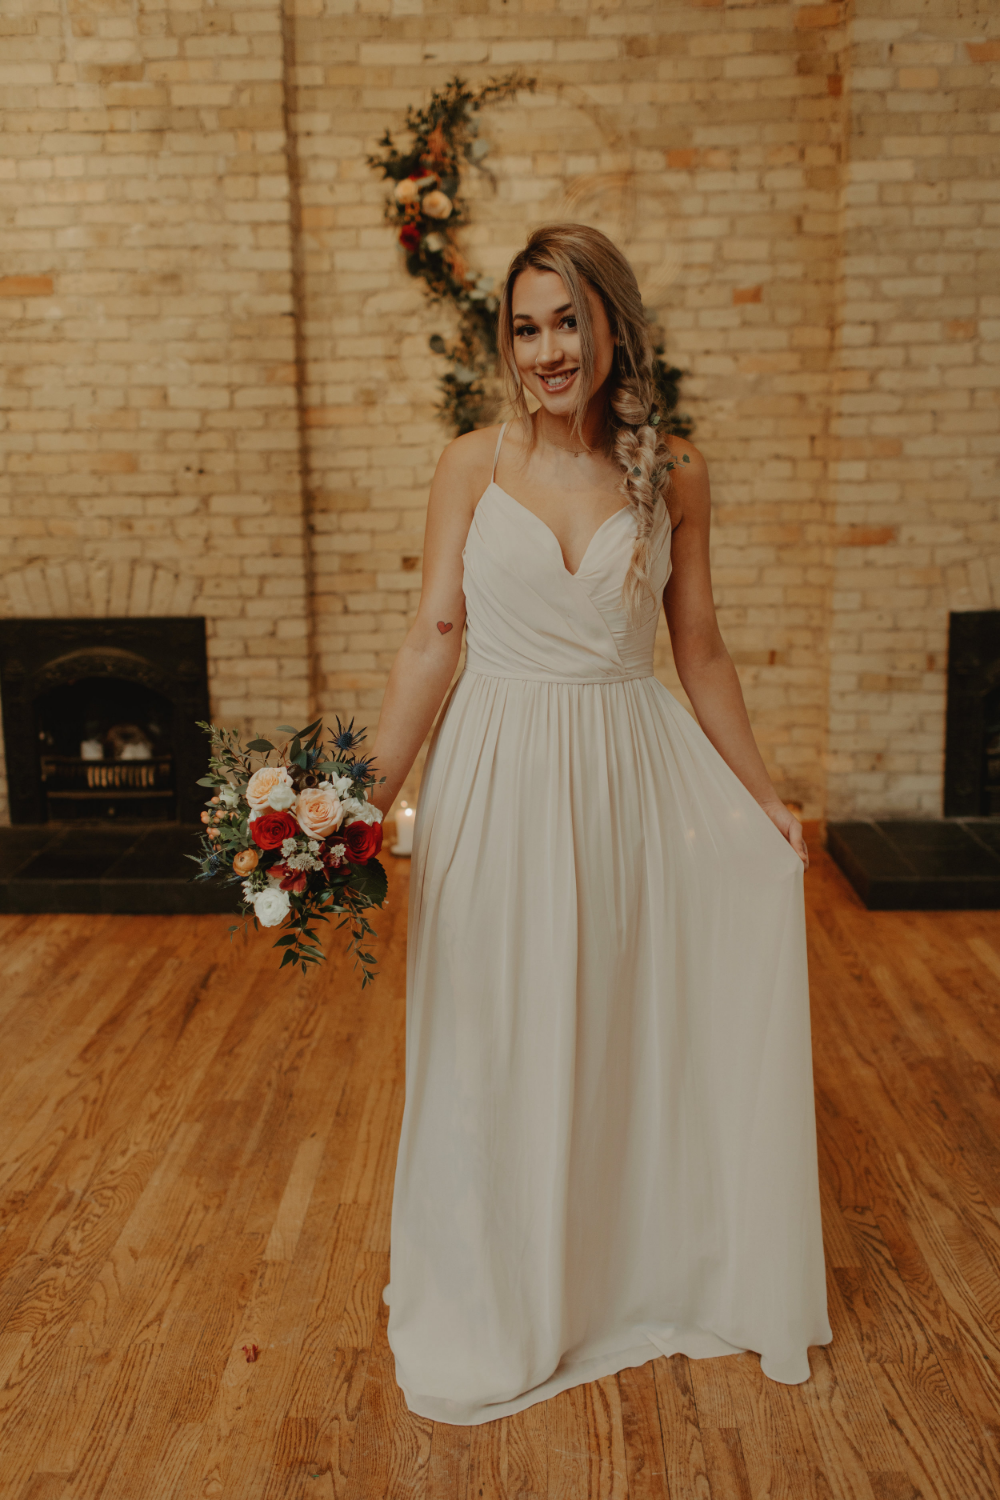 Champagne Beige Bridesmaid Dress From An Enchanted Jewel Tone Wedding At Onesto In Milwauk Neutral Bridesmaid Dresses Beige Bridesmaid Dress Bridesmaid Dresses